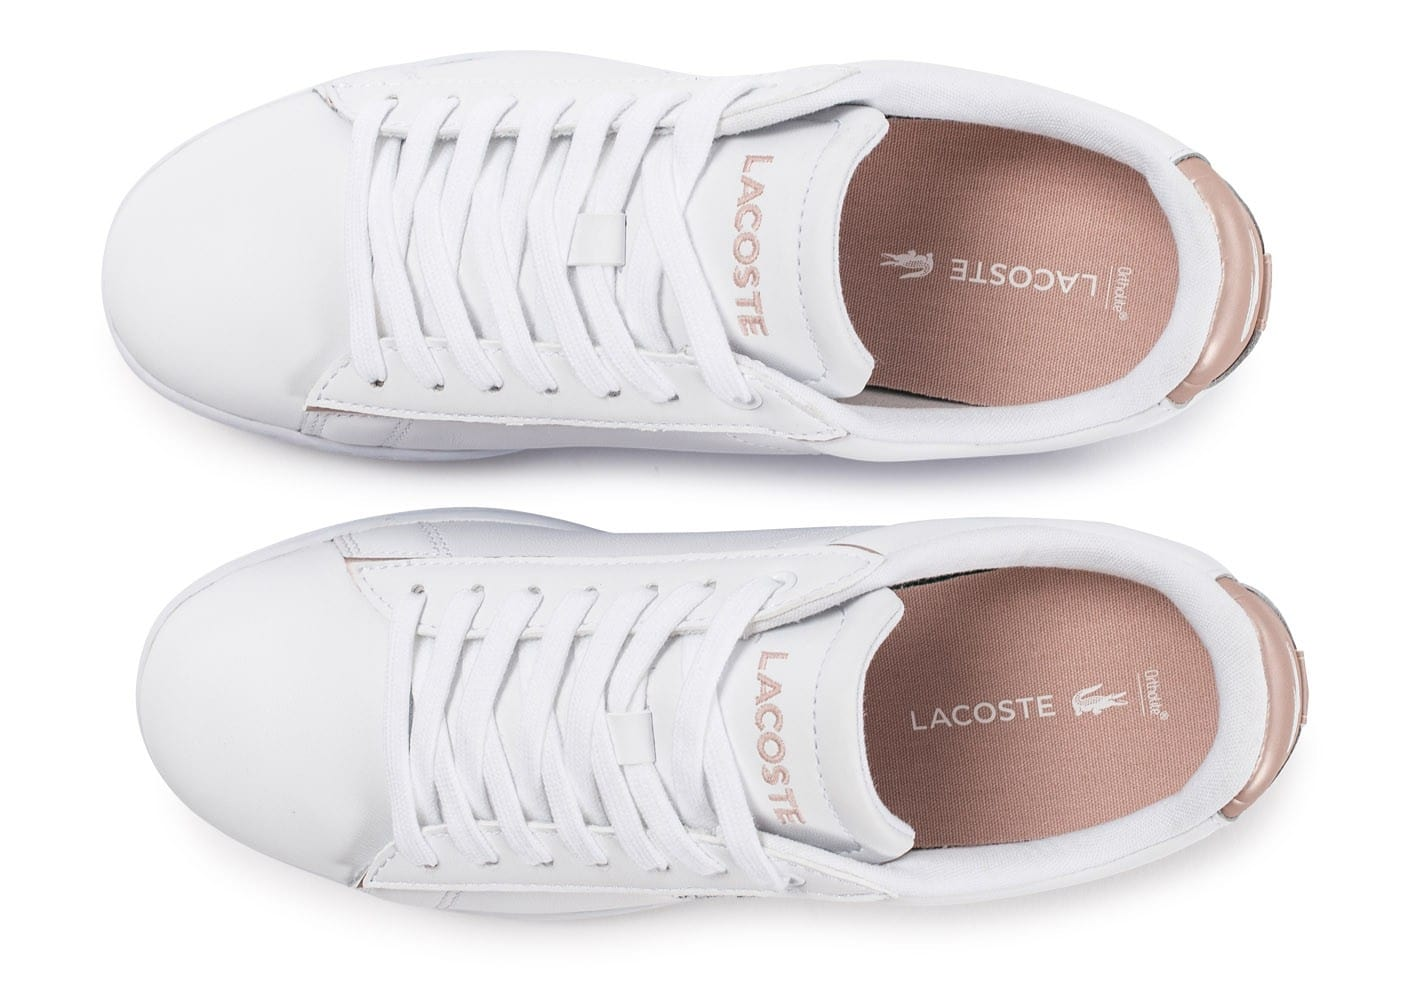 Baskets Perle Carnaby Et Chaussures Evo Femme Lacoste Blanche Rose Rj5LA4